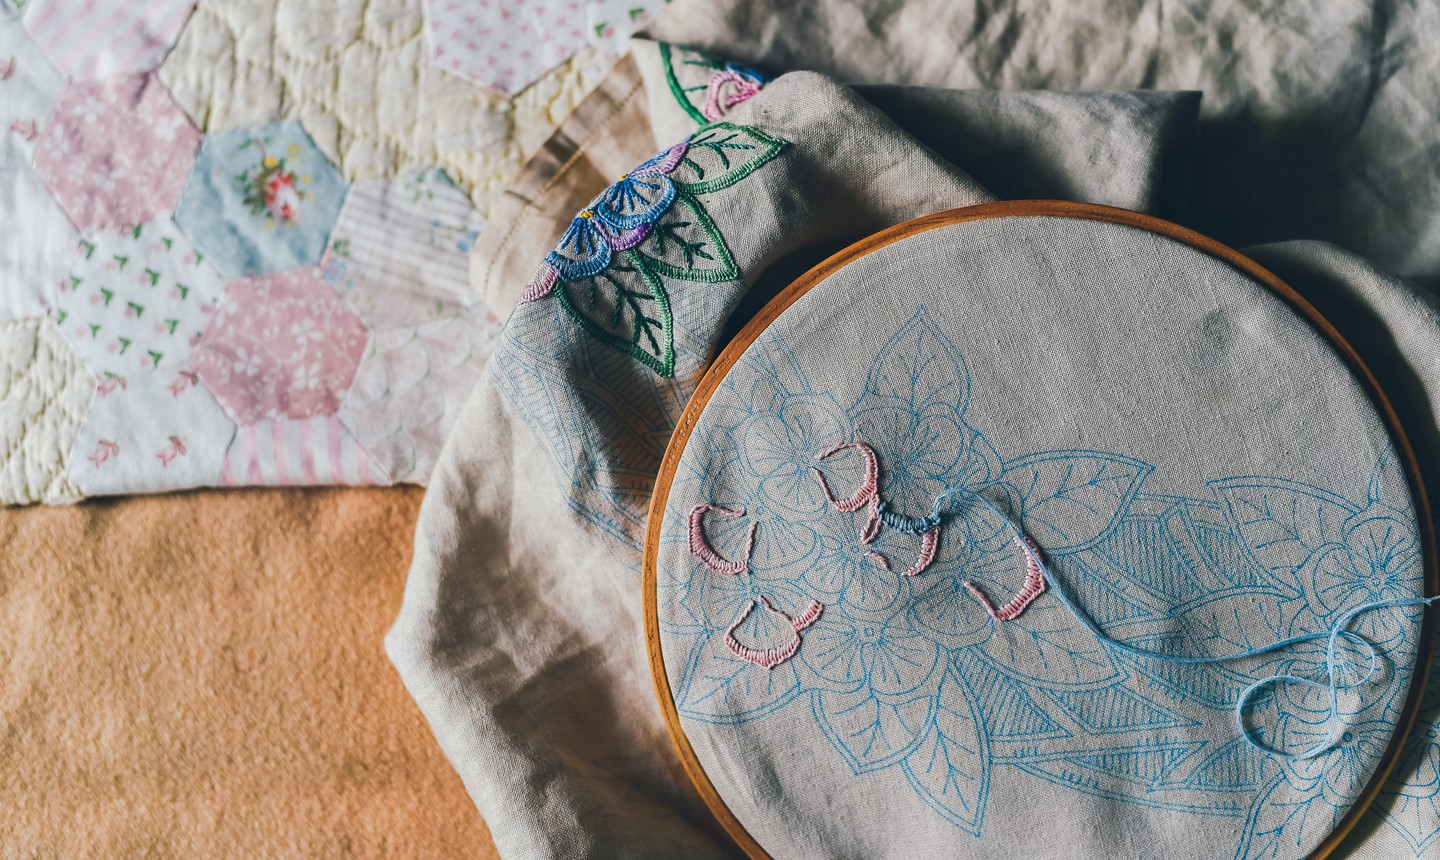 Embroidery Designs Patterns 5 Simple Ways To Transfer Embroidery Designs